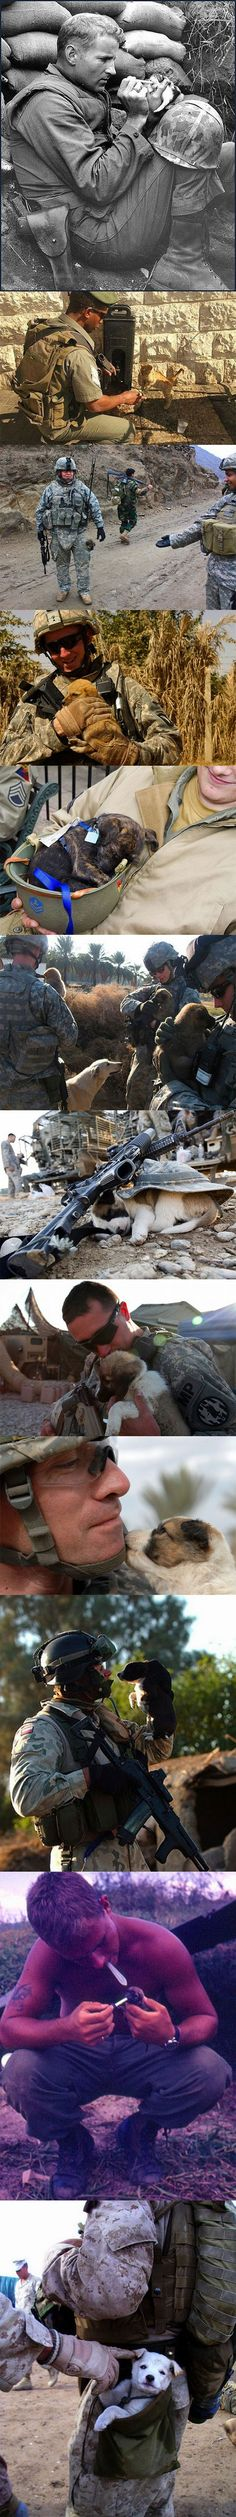 Our military and pets.  Sweet....